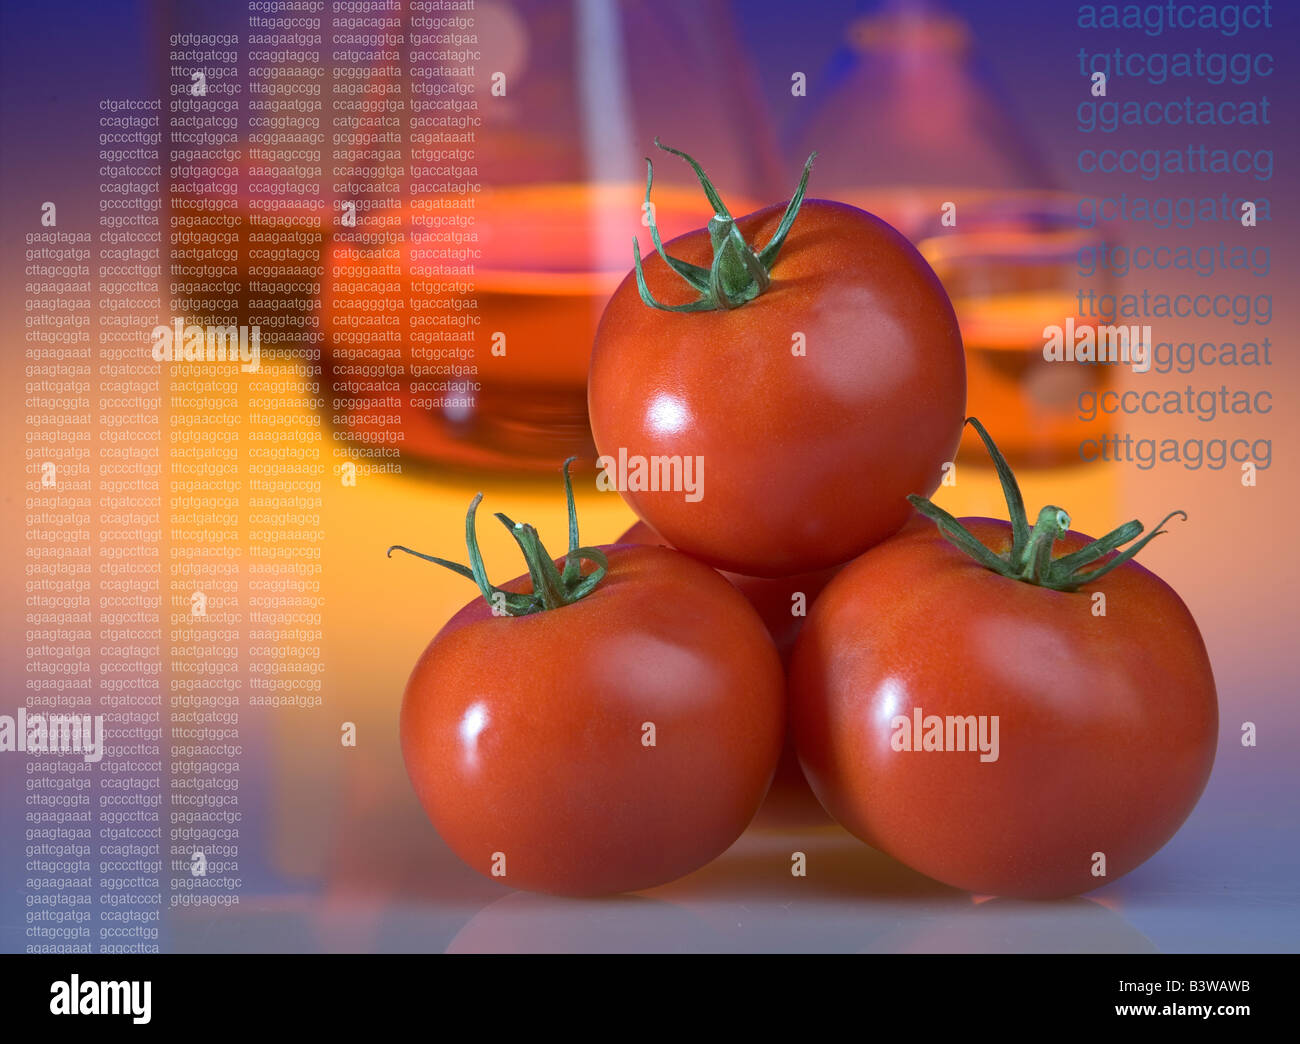 Concept shot of genetically modified tomatoes showing beakers and DNA sequence codes - Stock Image